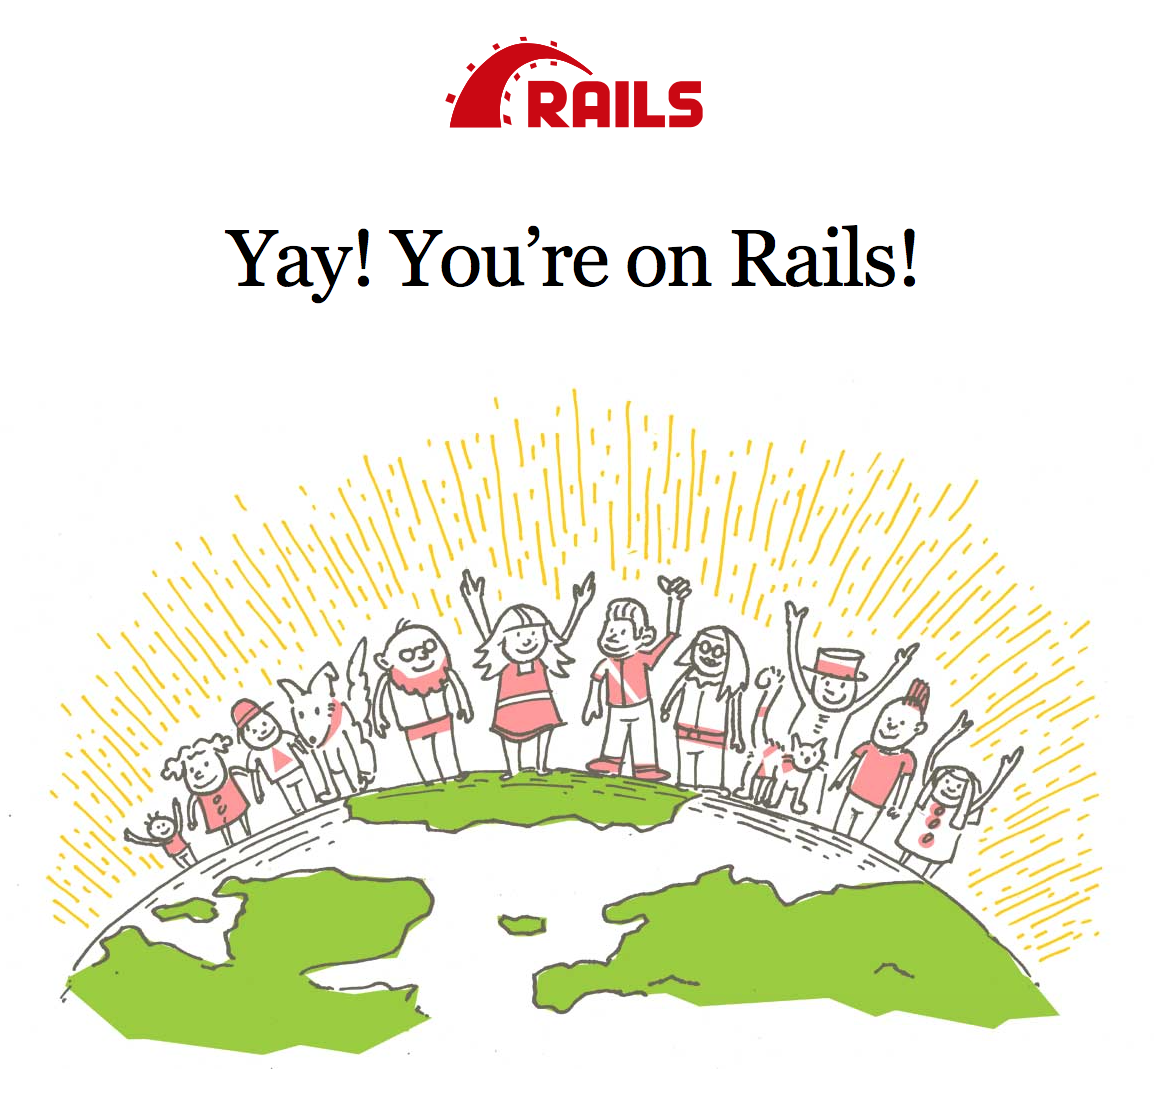 Your on rails